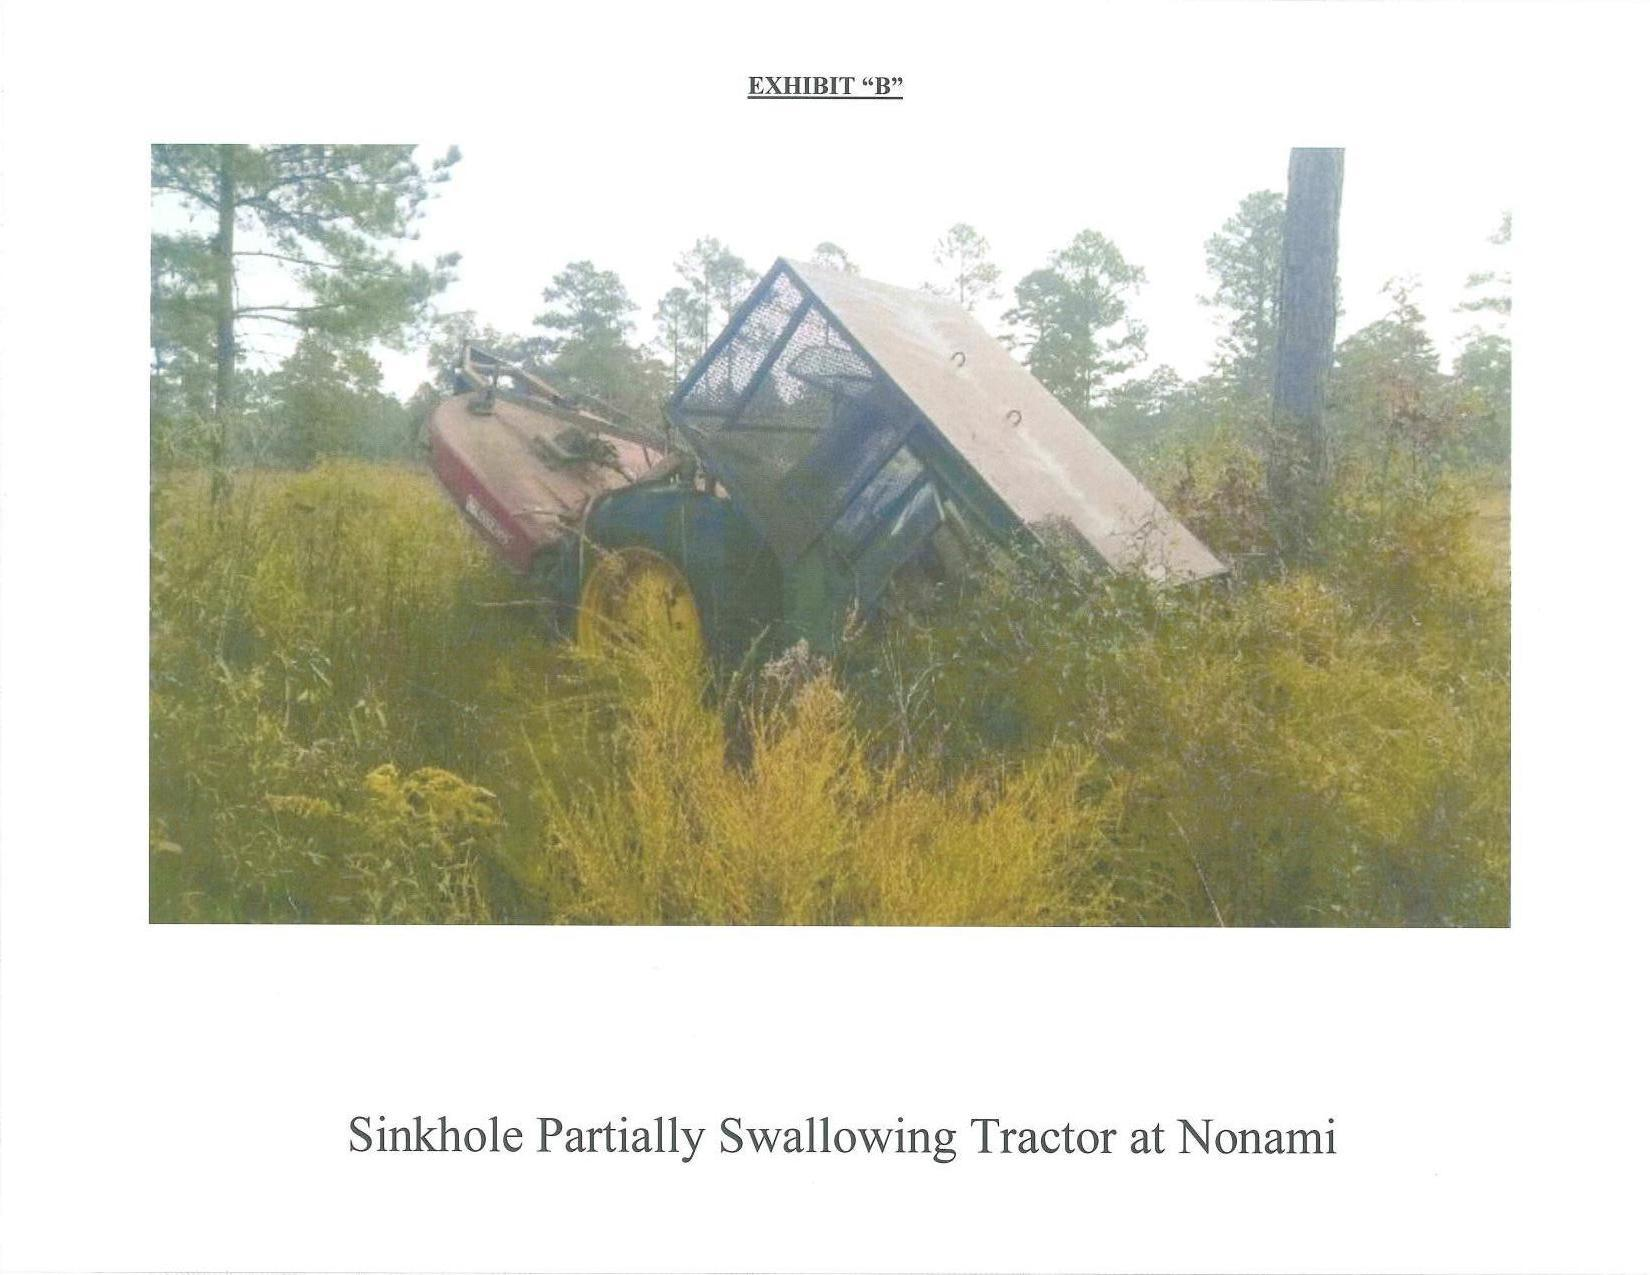 1650x1275 Exhibit B: Sinkhole Partially Swallowing Tractor at Nonami, in Nonami, by John S. Quarterman, for SpectraBusters.org, 13 November 2014